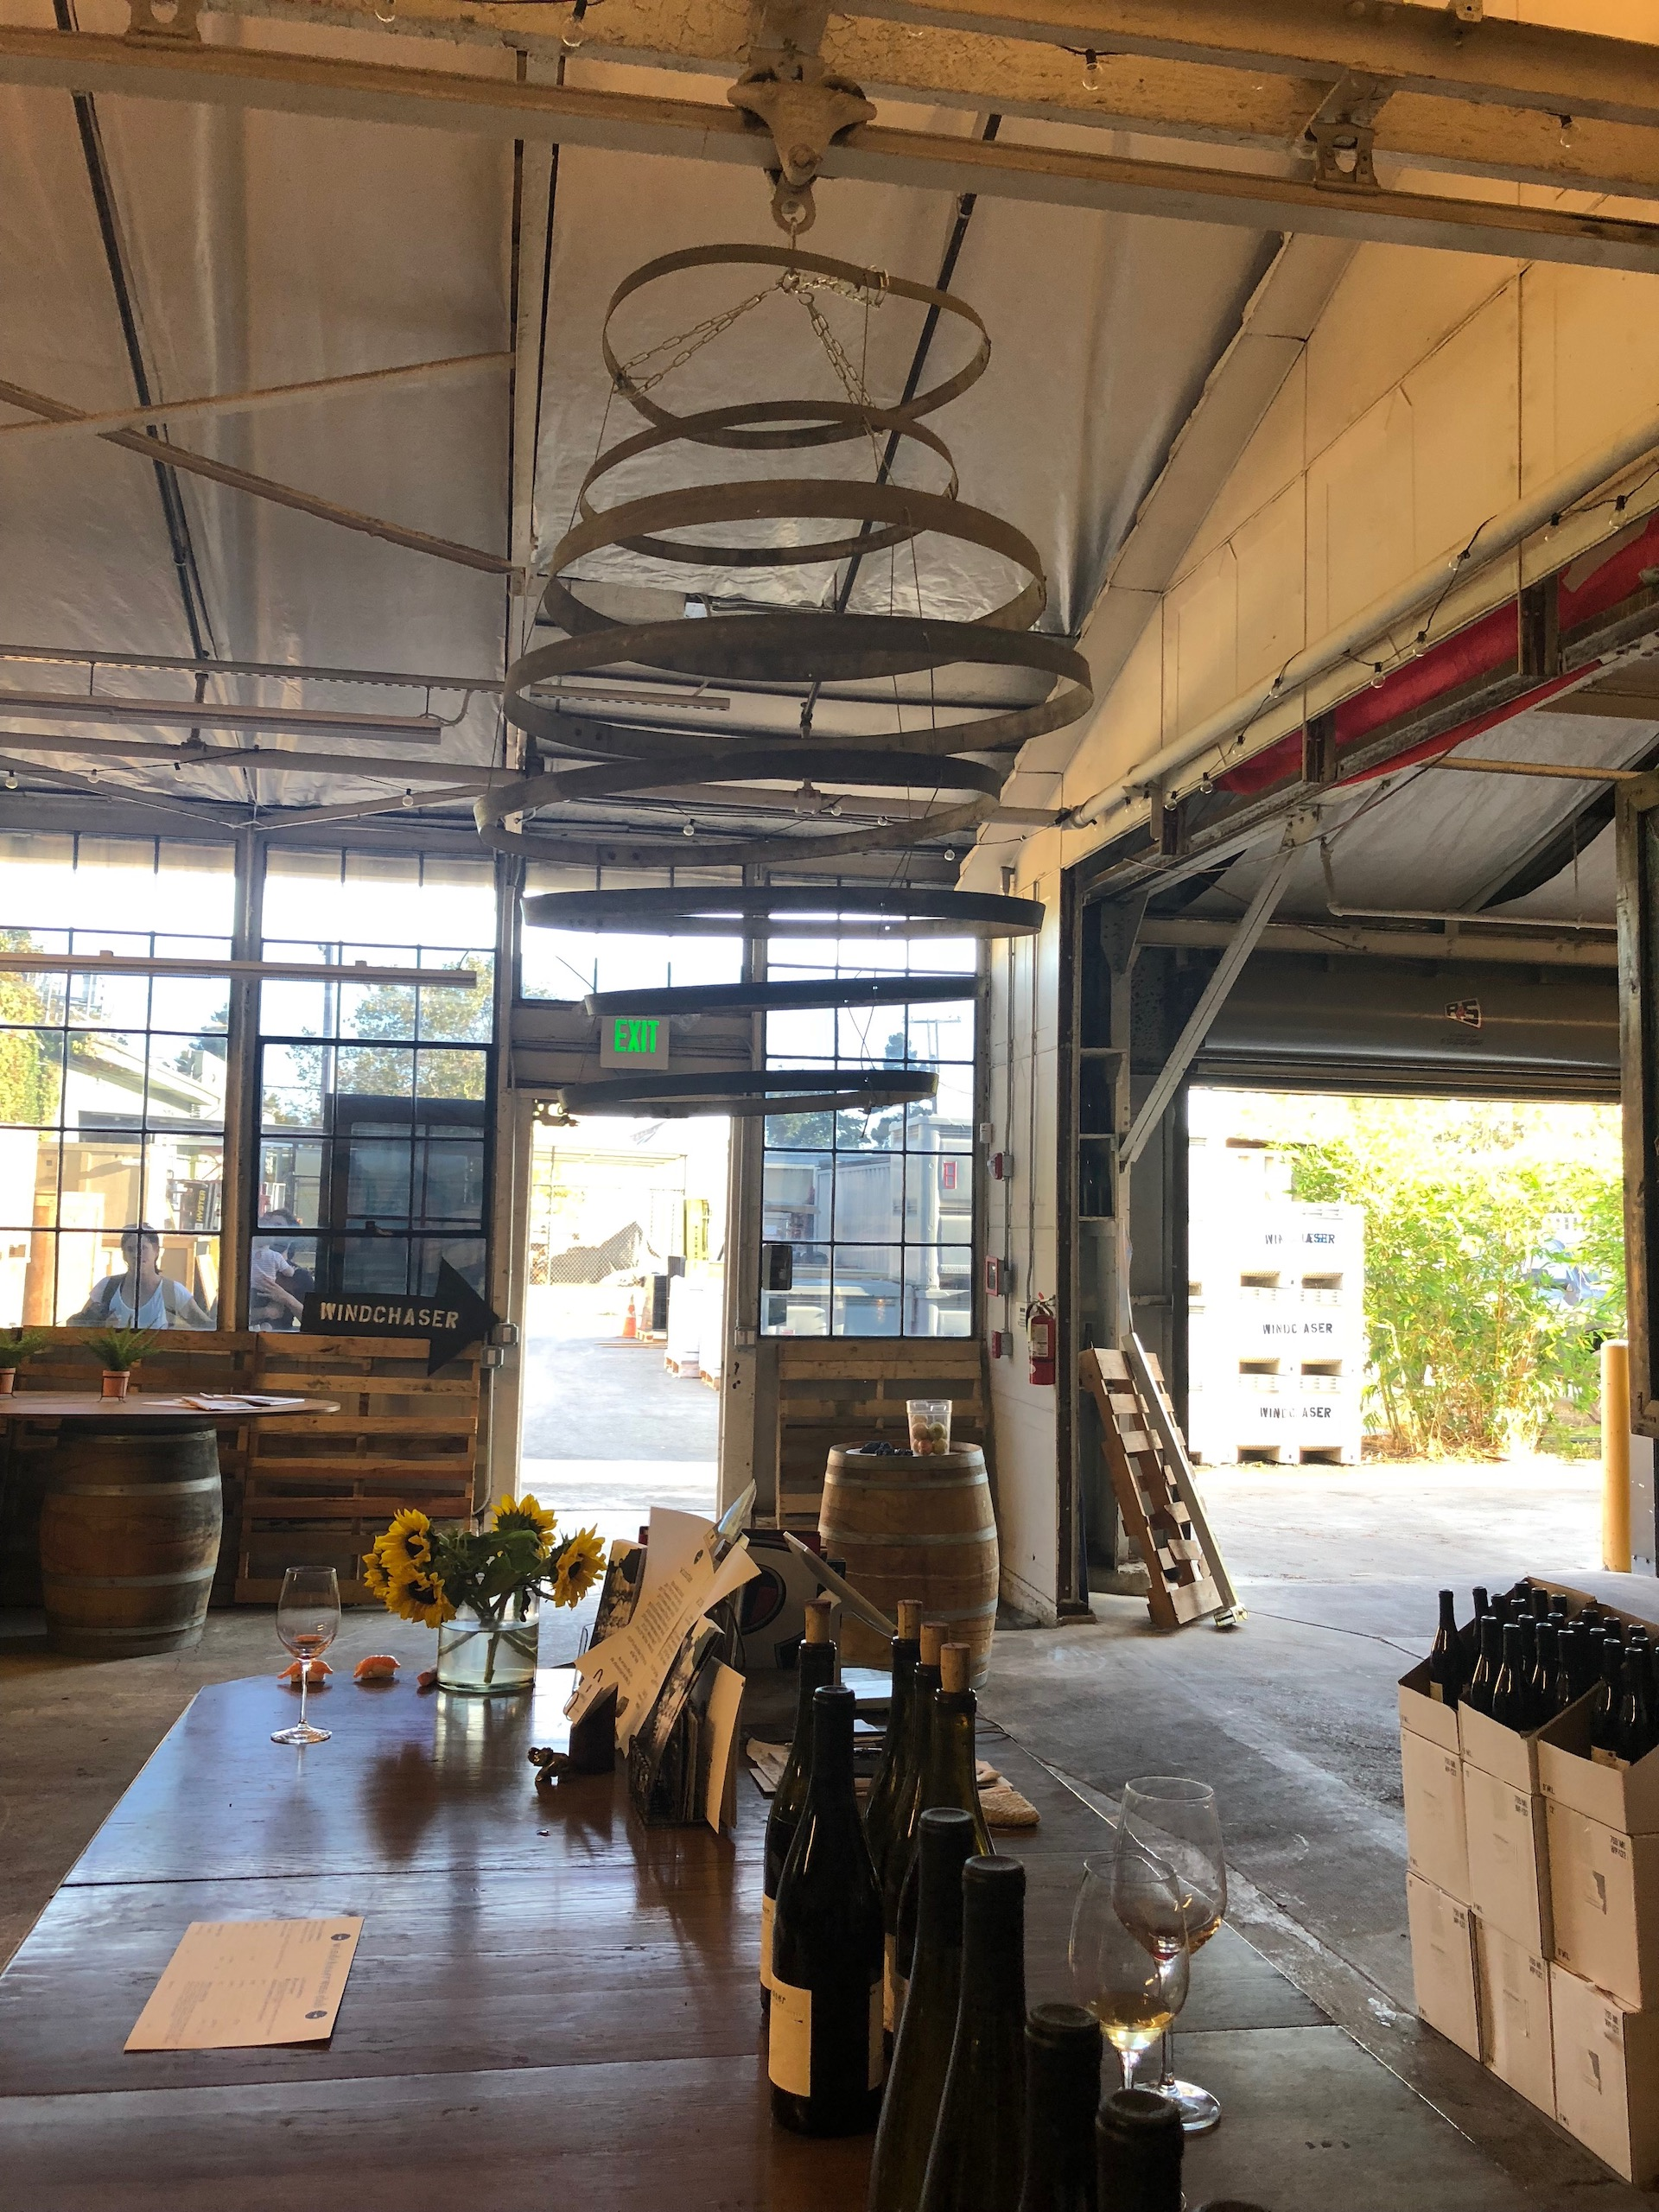 The winery and tasting room are the same space for Windchaser